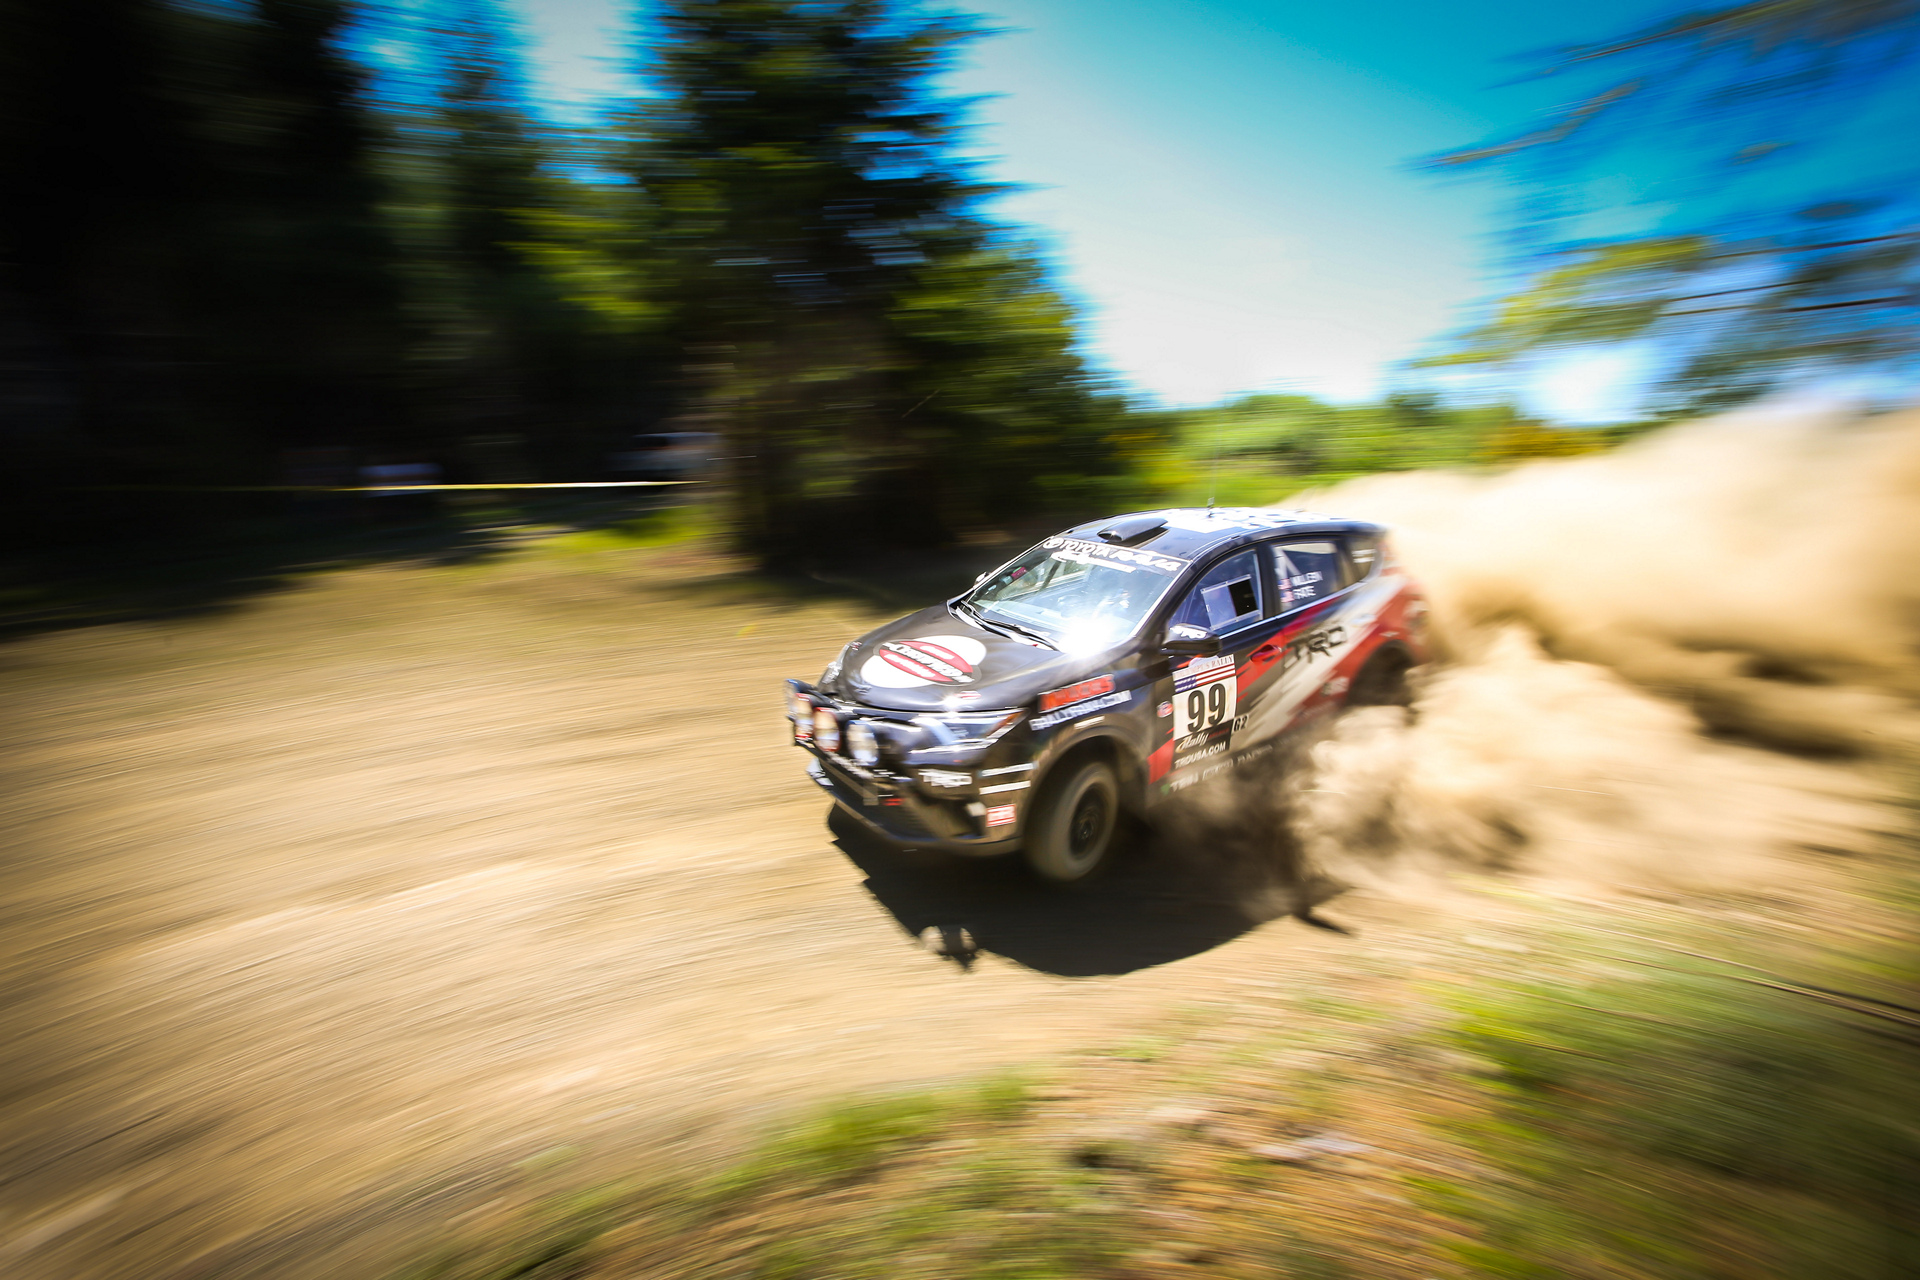 2016 Rally RAV4 © Toyota Motor Corporation